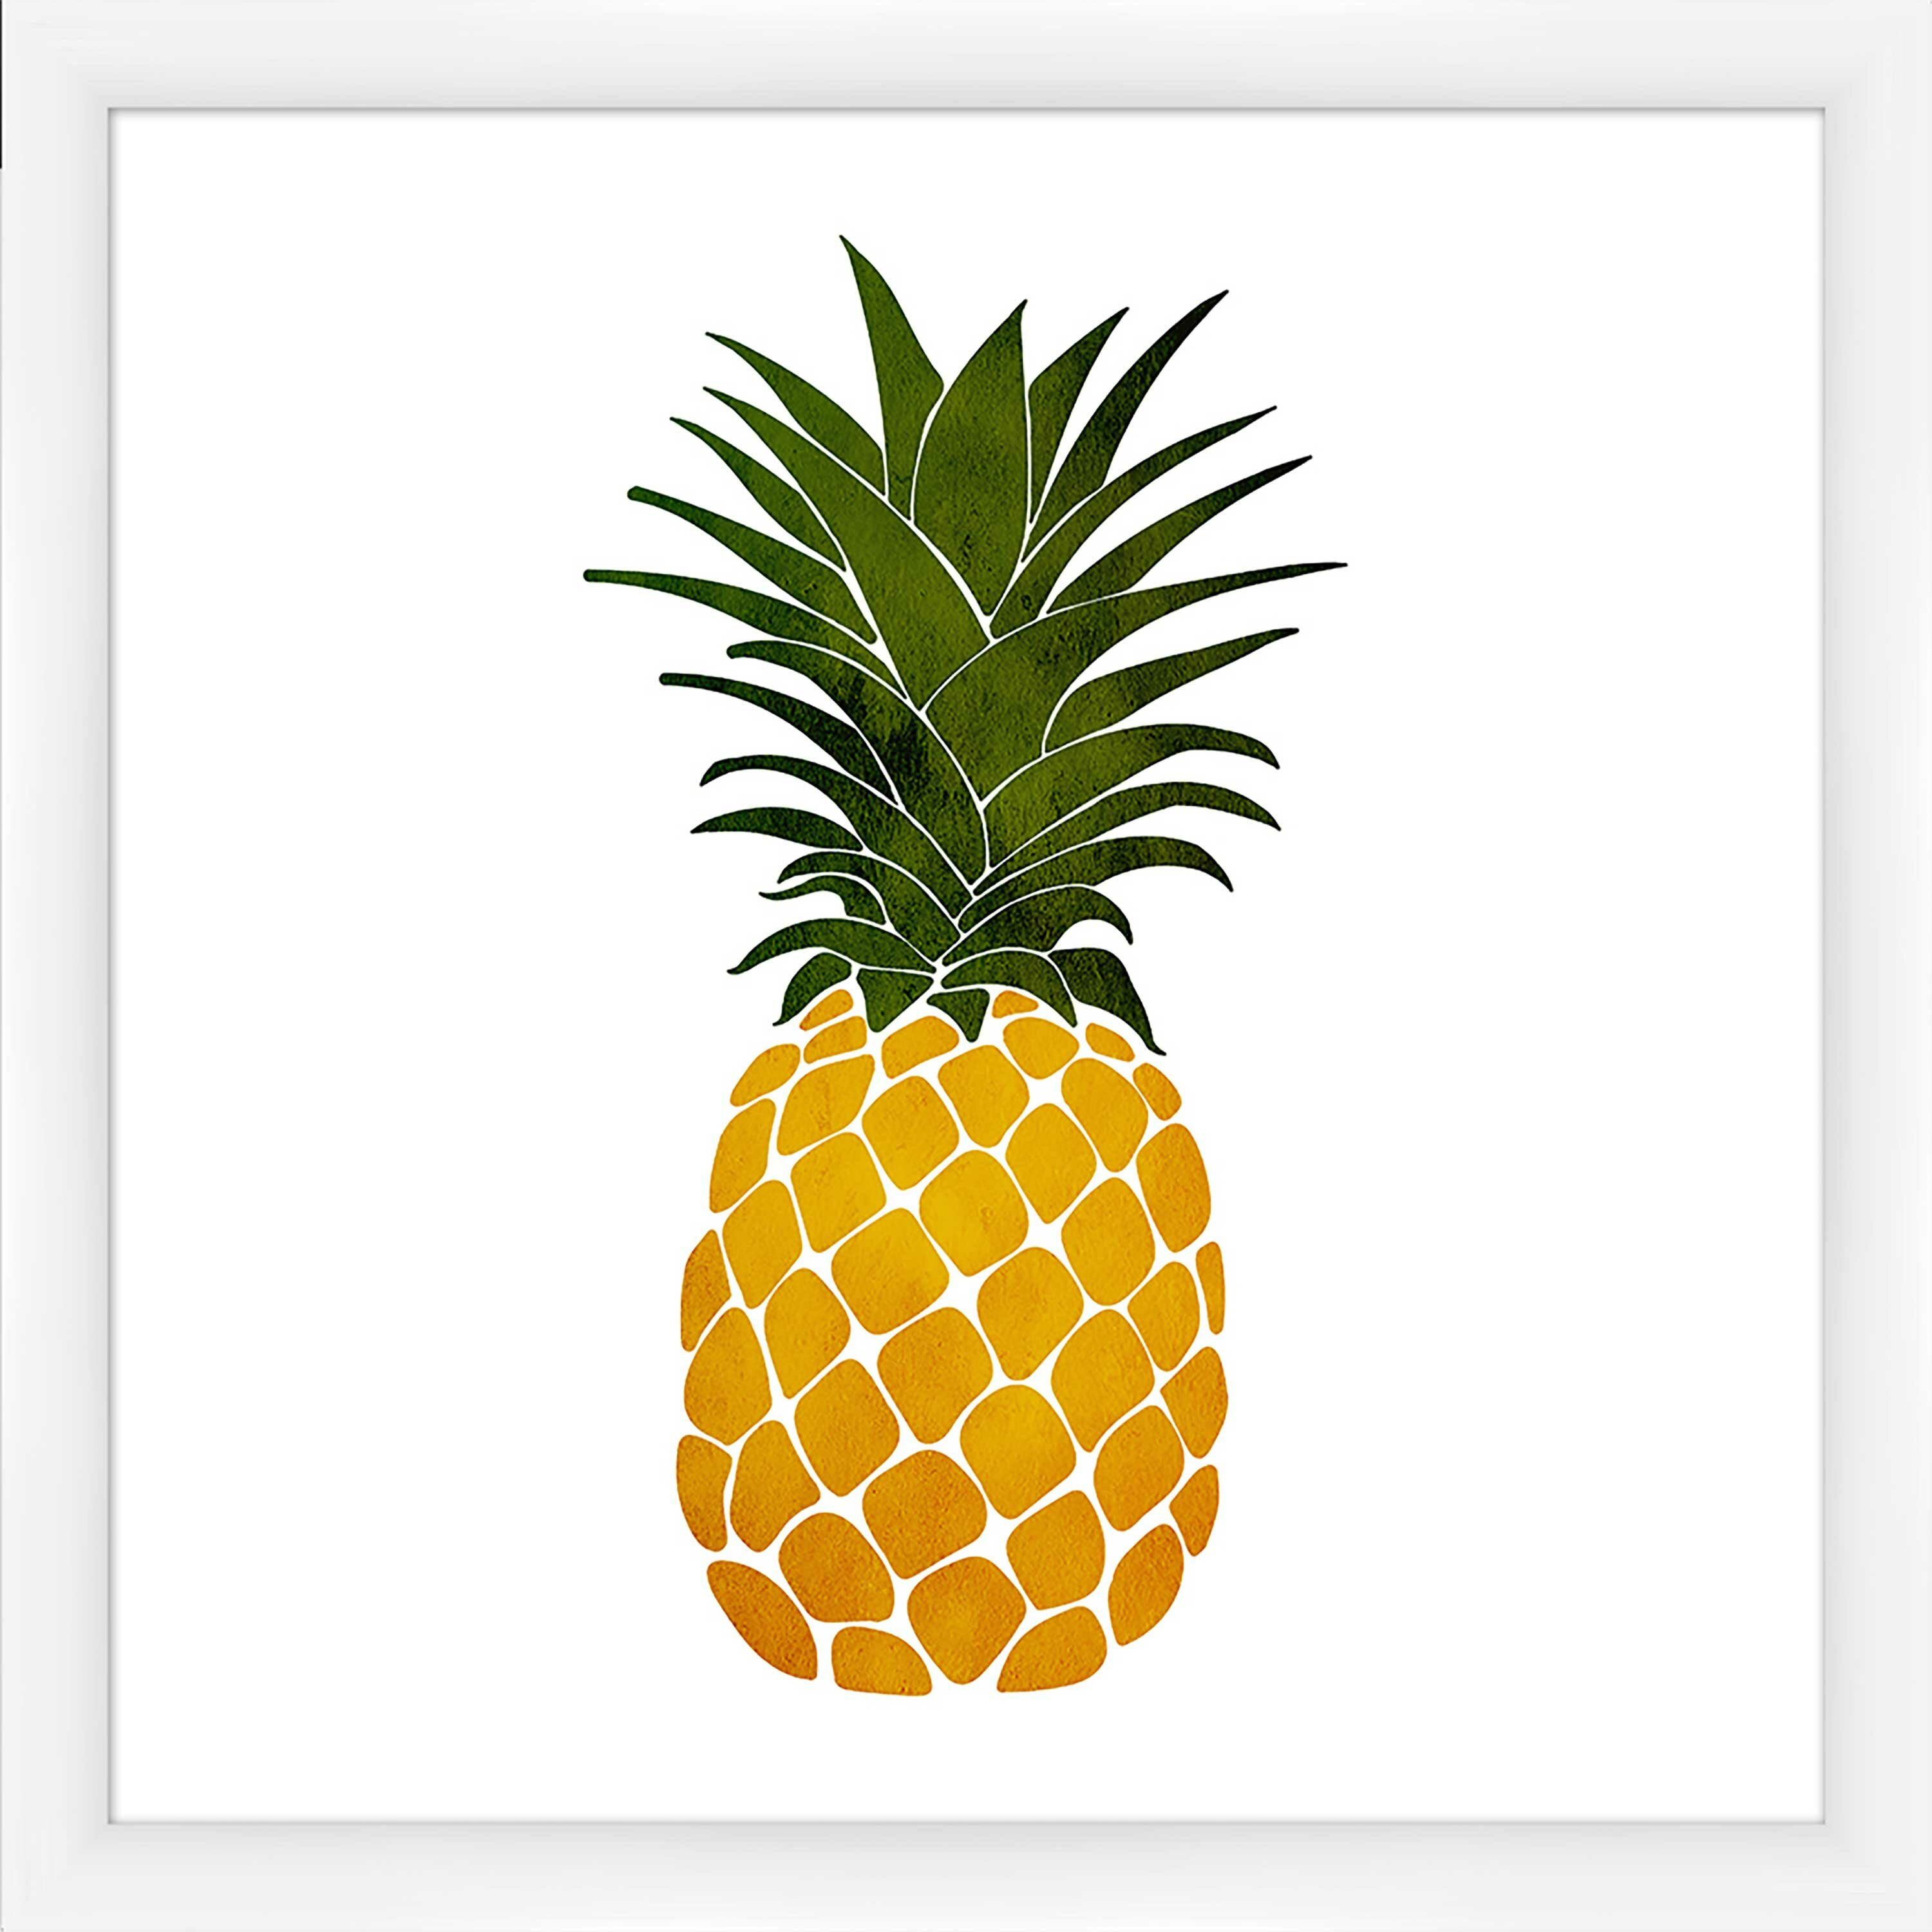 Ptm Pineapple Picture Frame Graphic Art Print On Canvas Wayfair